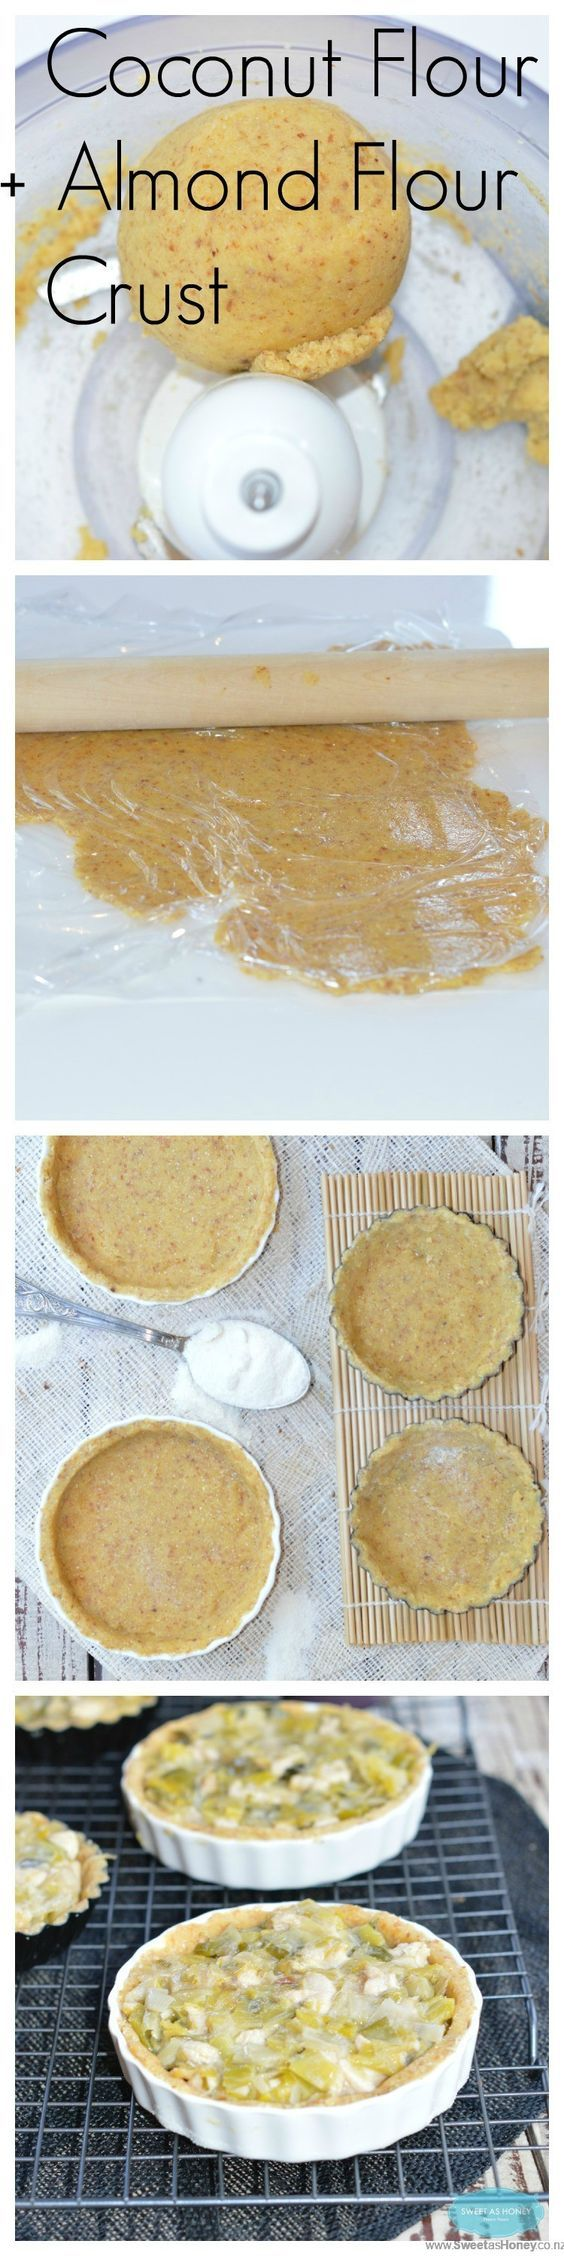 GF/Paleo Grain Free pie crust made with almond meal and Coconut flour. Sugar free. Perfect for a dessert pie or lunch pie.